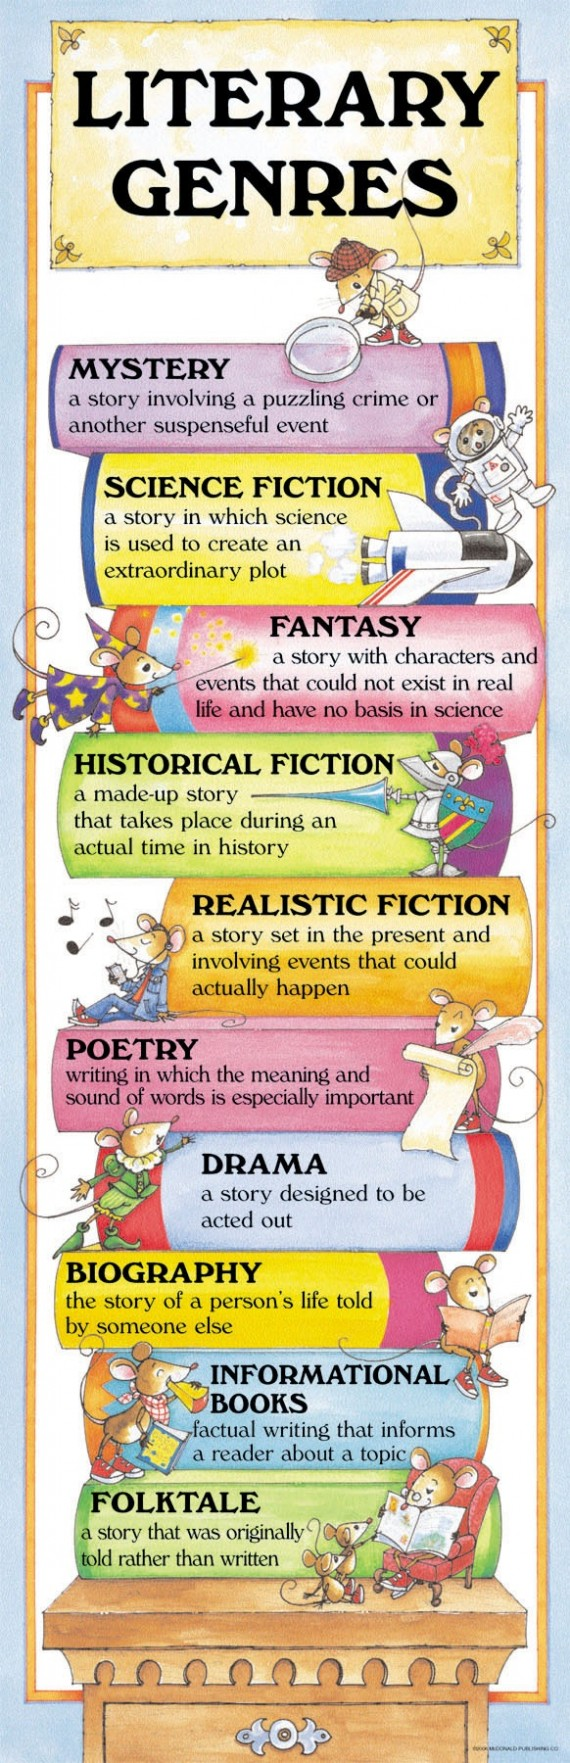 Literary Genres Poster